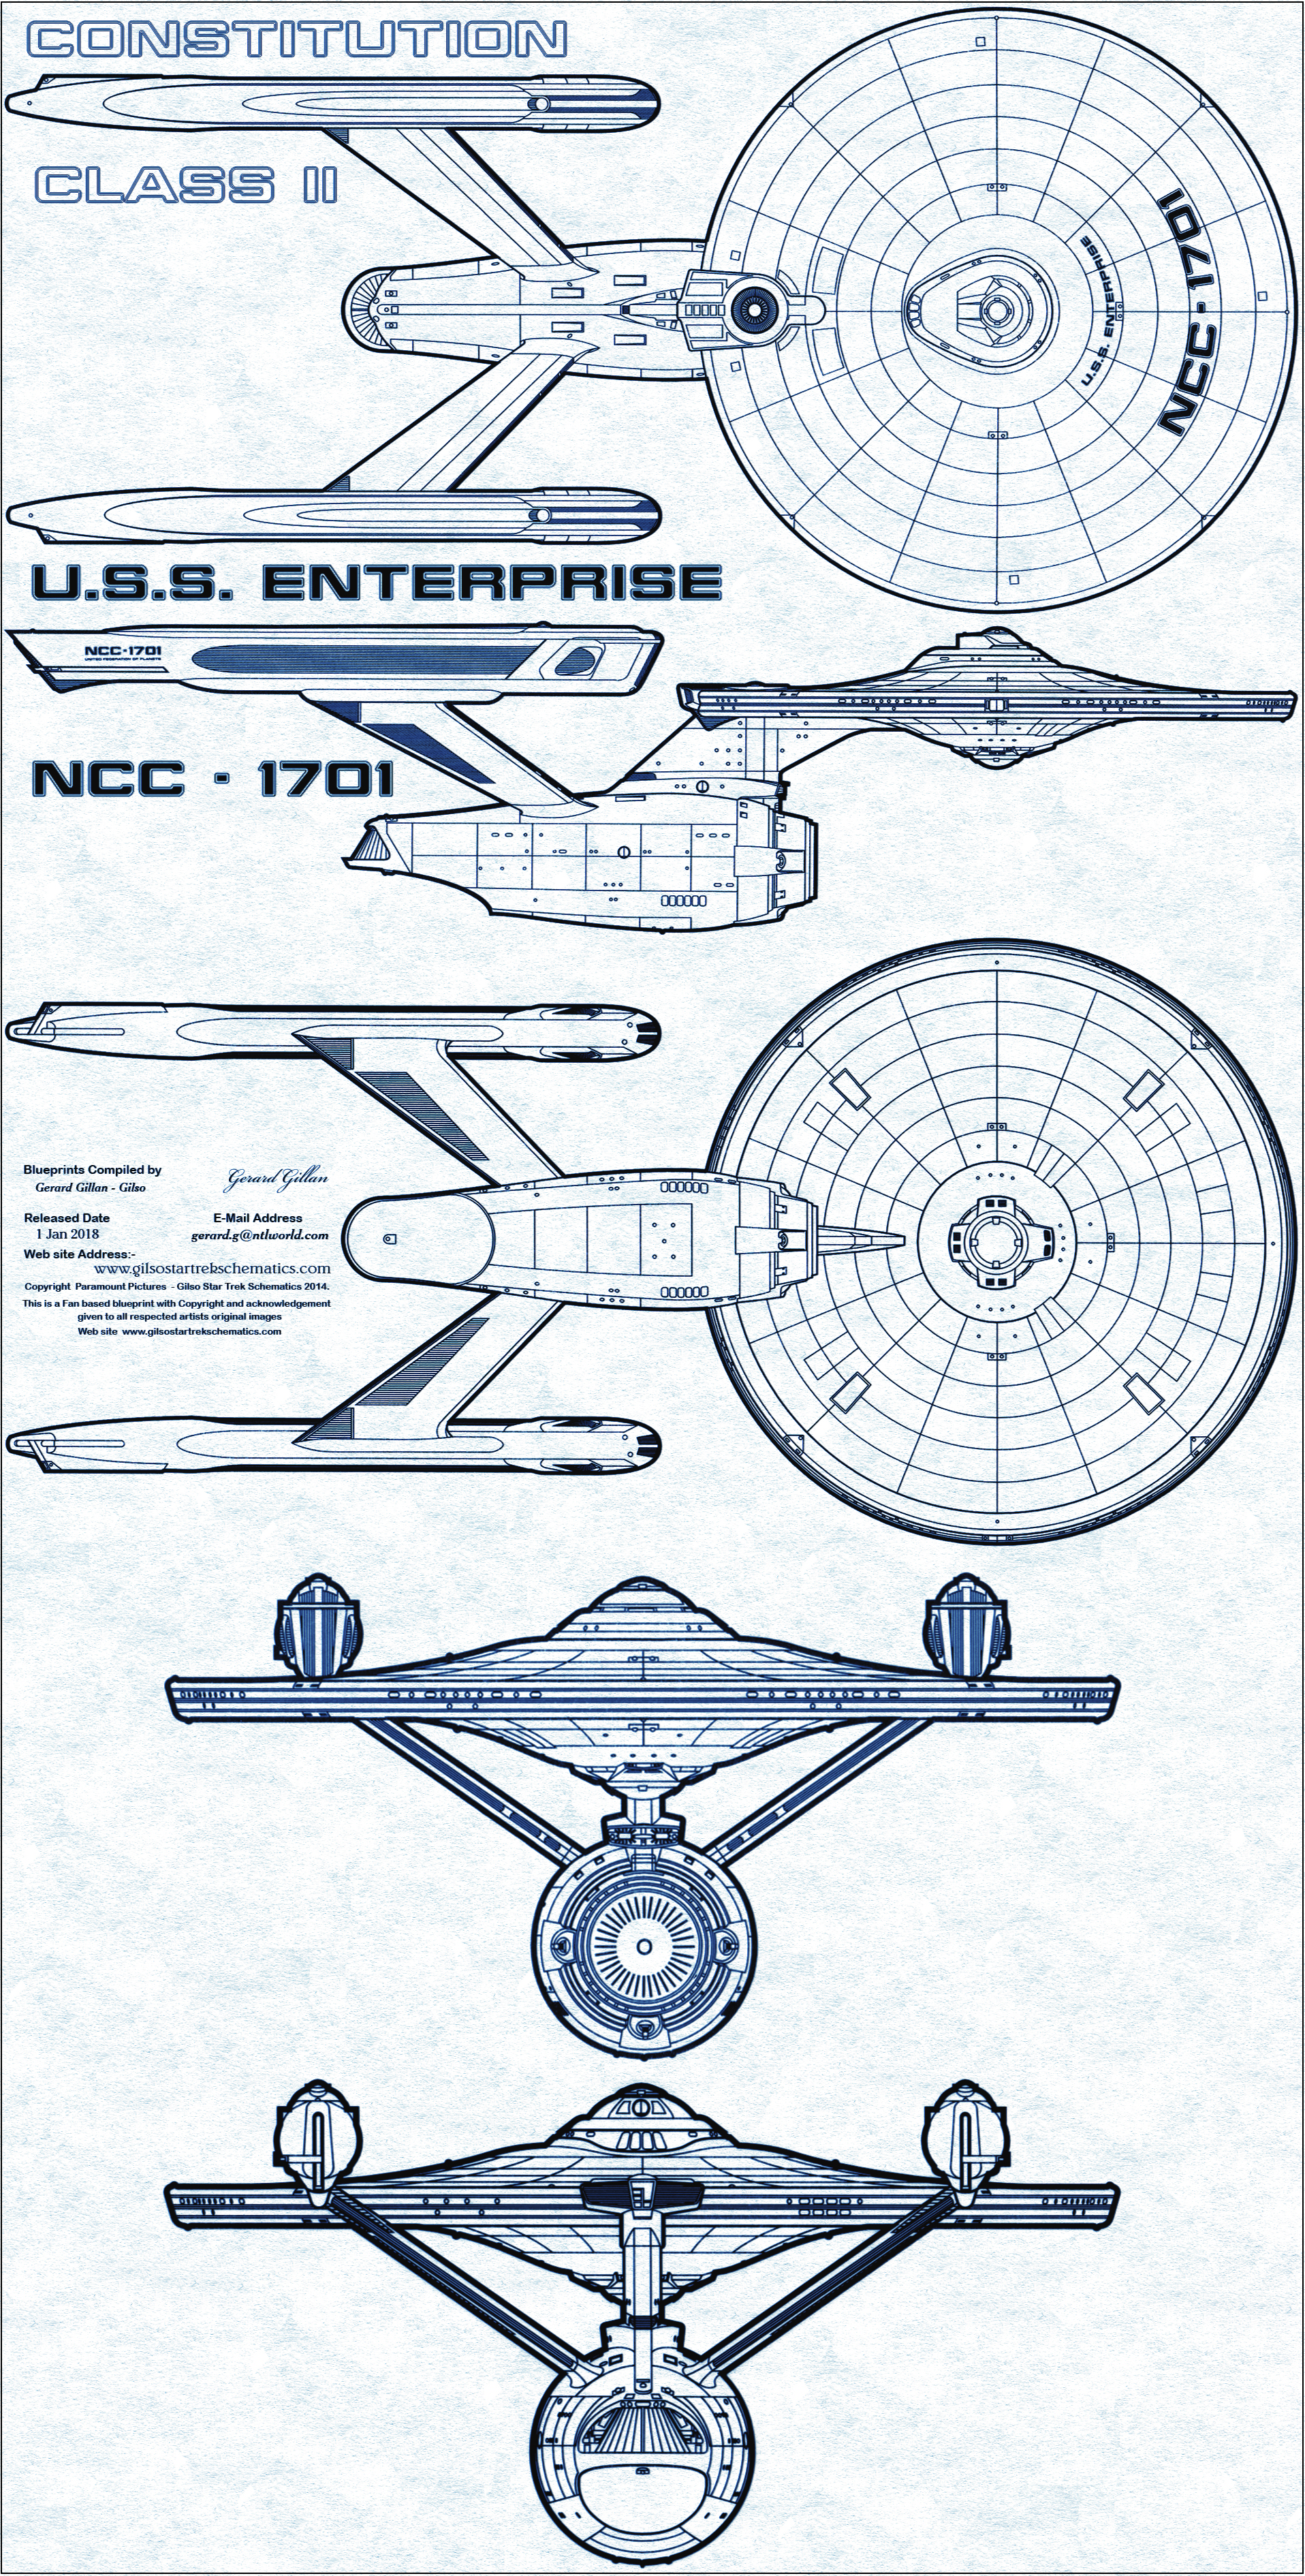 STAR TREK Blueprint Quick Reference Gallery List Uss Enterprise Schematic on enterprise-e schematics, robotech schematics, gilso star trek schematics, uss vengeance schematics, uss excelsior schematics, uss ncc-1701 d, star trek voyager schematics, enterprise-j schematics, uss voyager specifications, uss voyager lcars, ncc 1701 e schematics, ds9 schematics, new enterprise ncc-1701 schematics, uss voyager schematics, star trek enterprise schematics, uss defiant schematics, uss reliant schematics, star trek lcars schematics, enterprise nx-01 schematics, enterprise-d schematics,